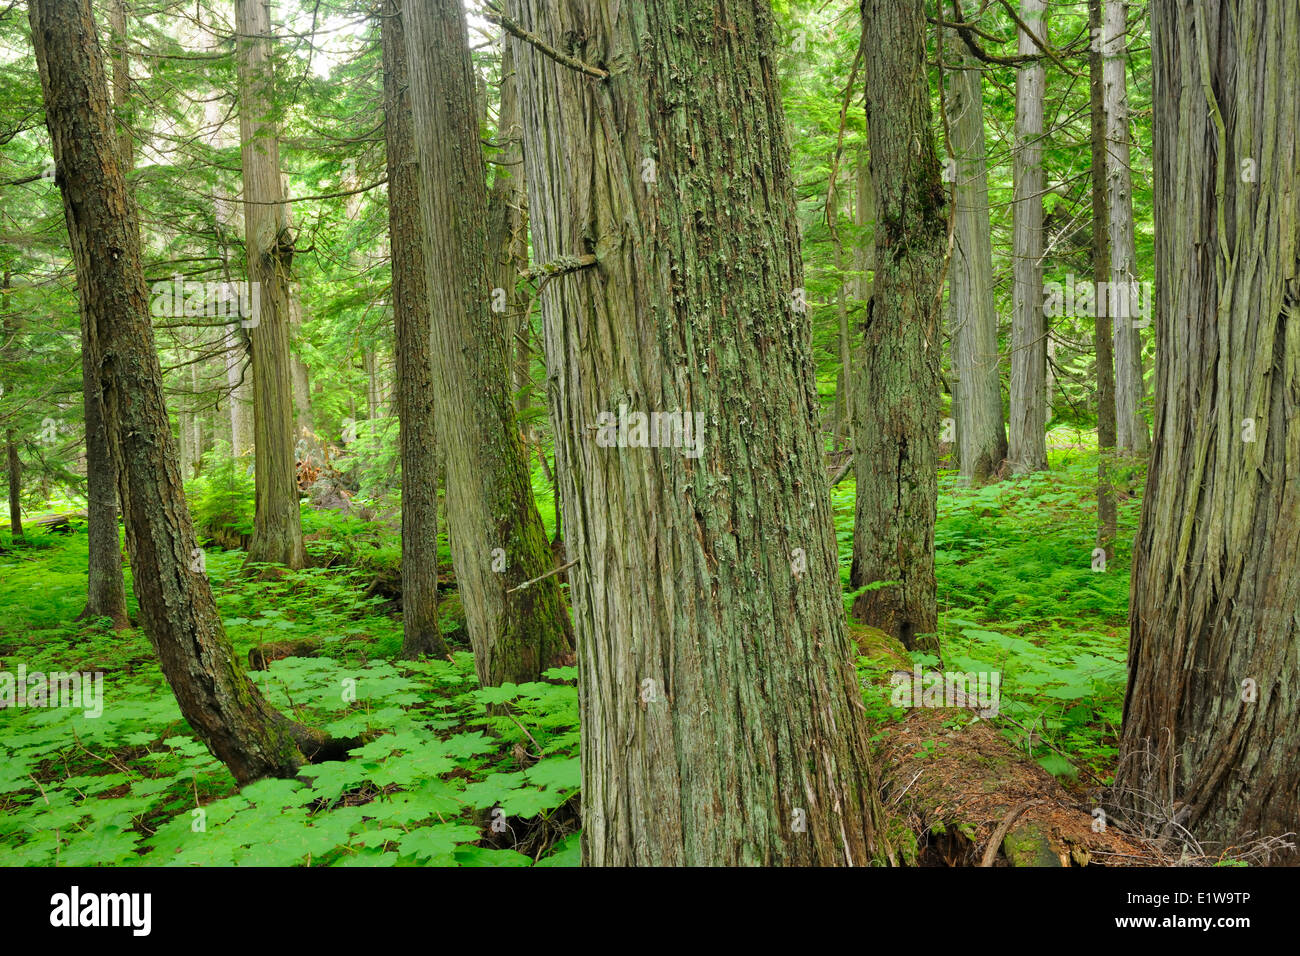 Old growth forest in Inland temperate rain forest on the Hemlock Grove Trail, Glacier National Park, British Columbia, - Stock Image